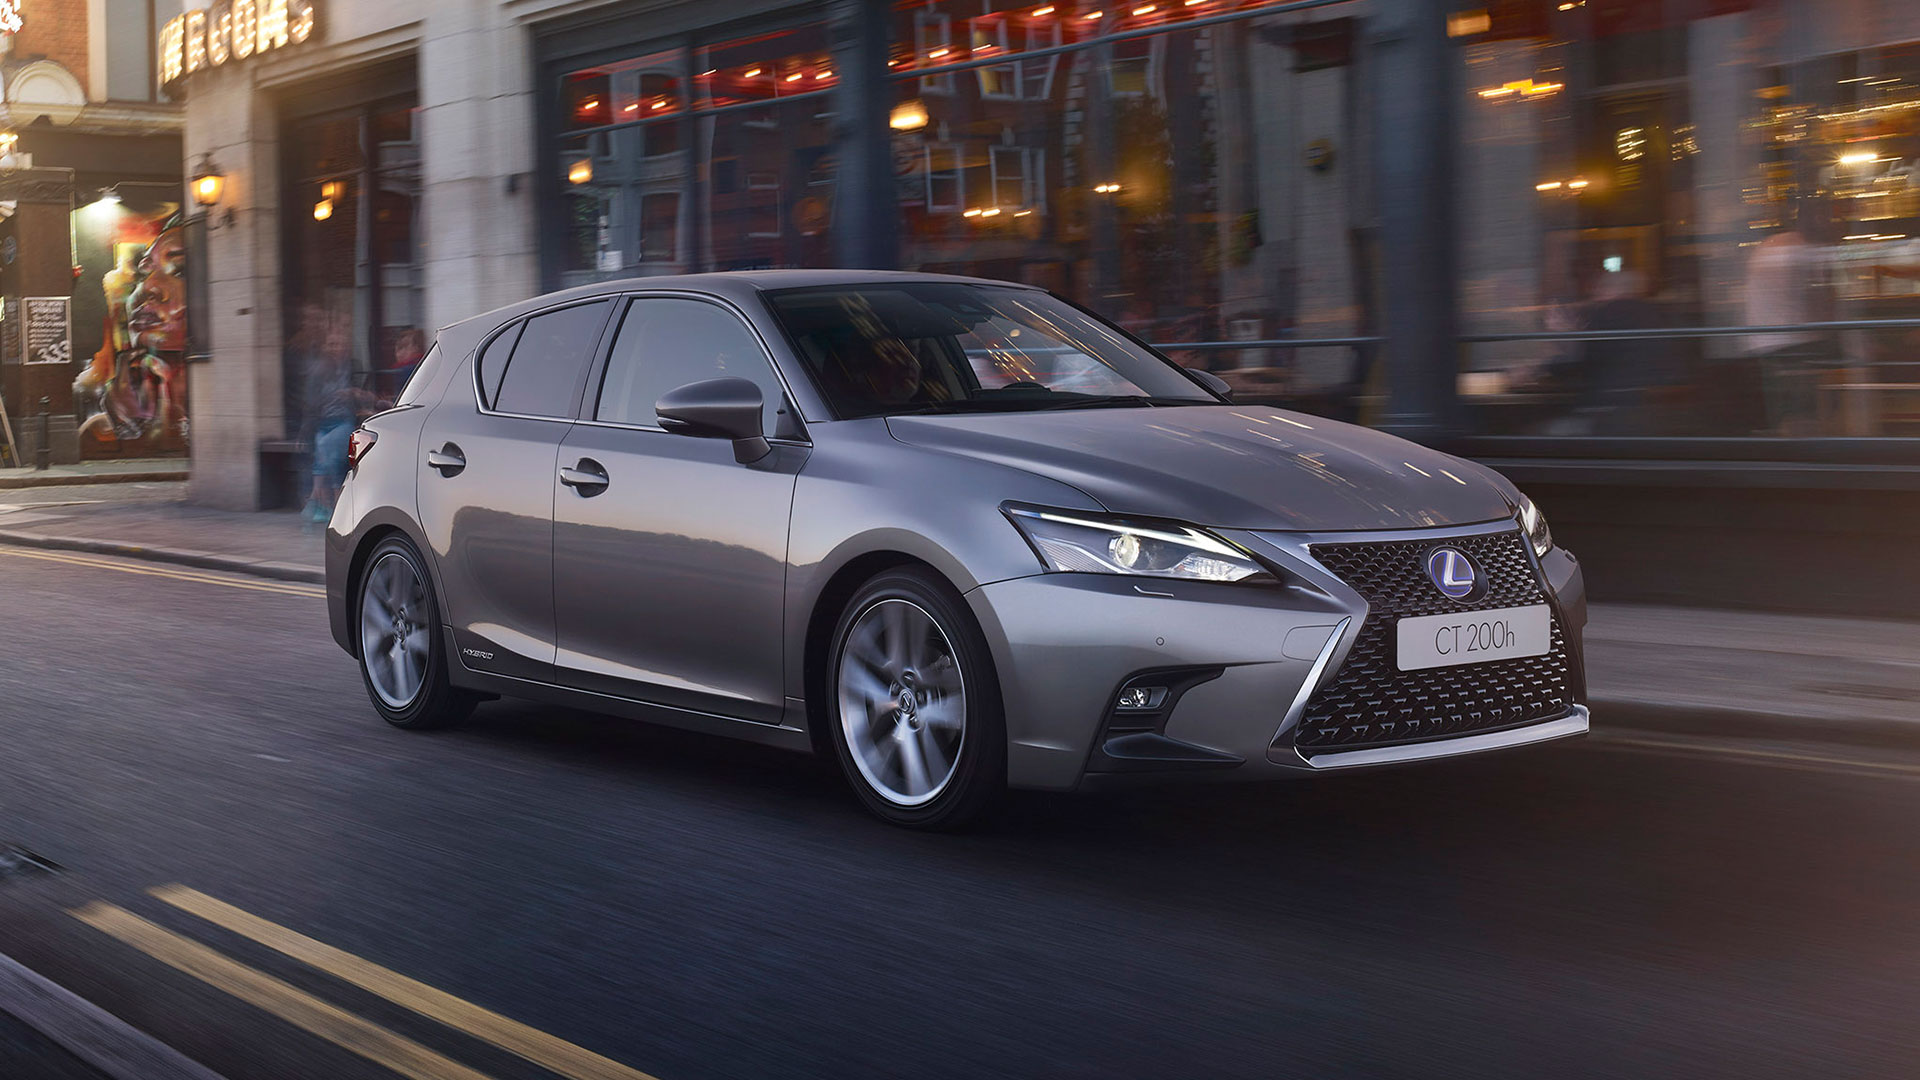 Lexus Luxury Interior >> Lexus CT Luxury Hybrid Compact Car | Lexus CT 200h | Lexus UK